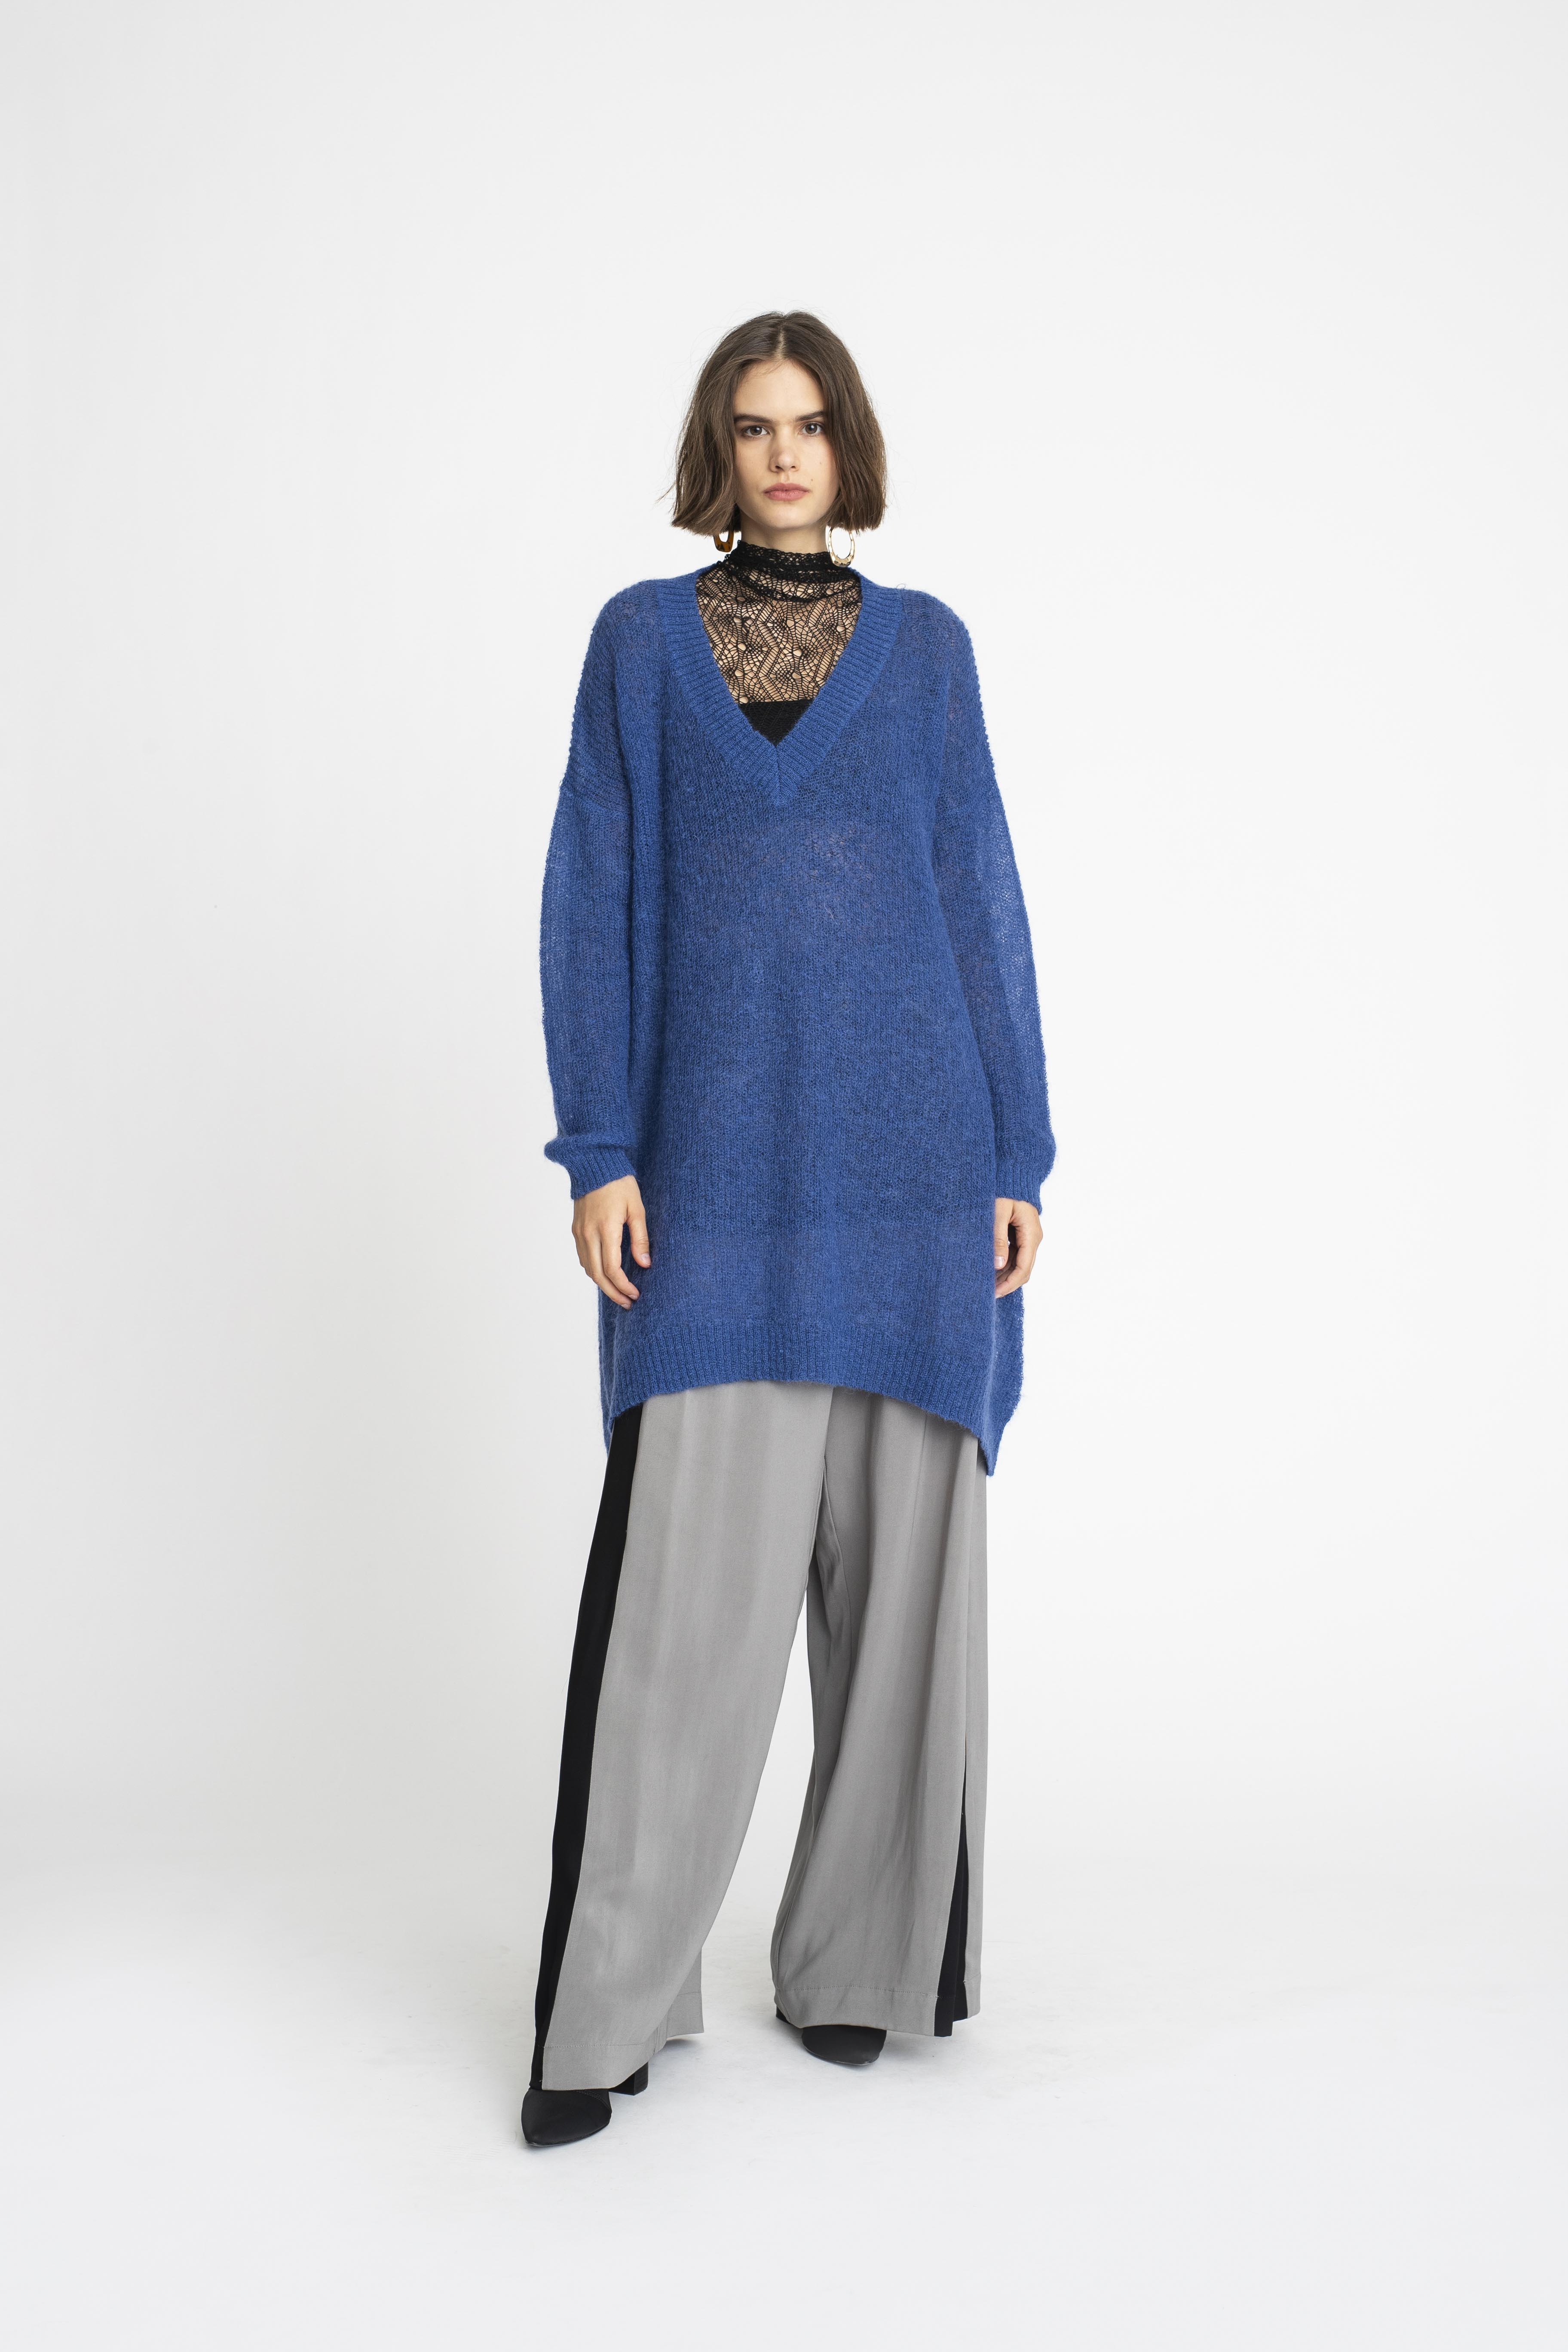 Atmospheric-Sweater_Baseline-Tunic_Attained-Pant_TaylorBoutique_AW19_L49_1196 2